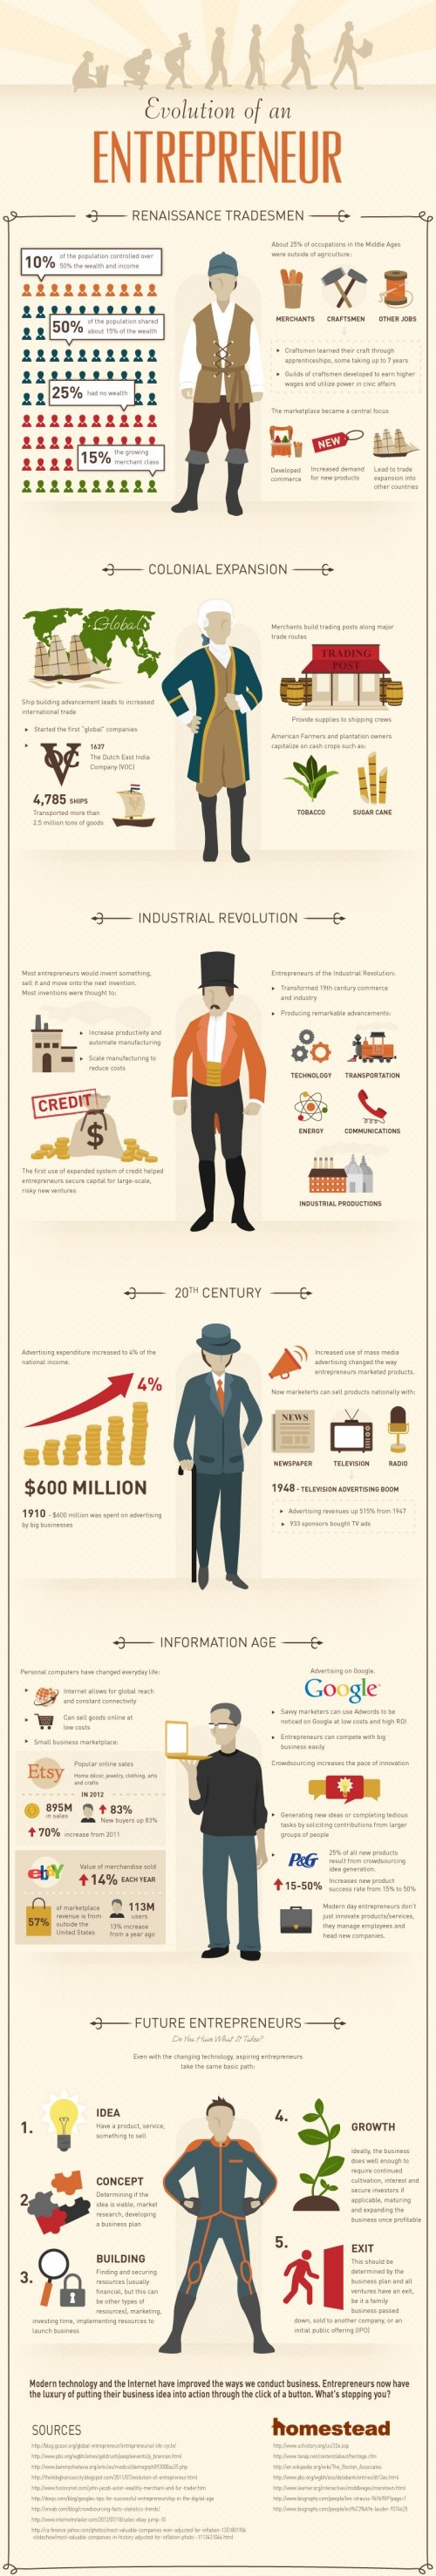 Evolution of an Entrepreneur – Infographic on http://www.bestinfographic.co.uk